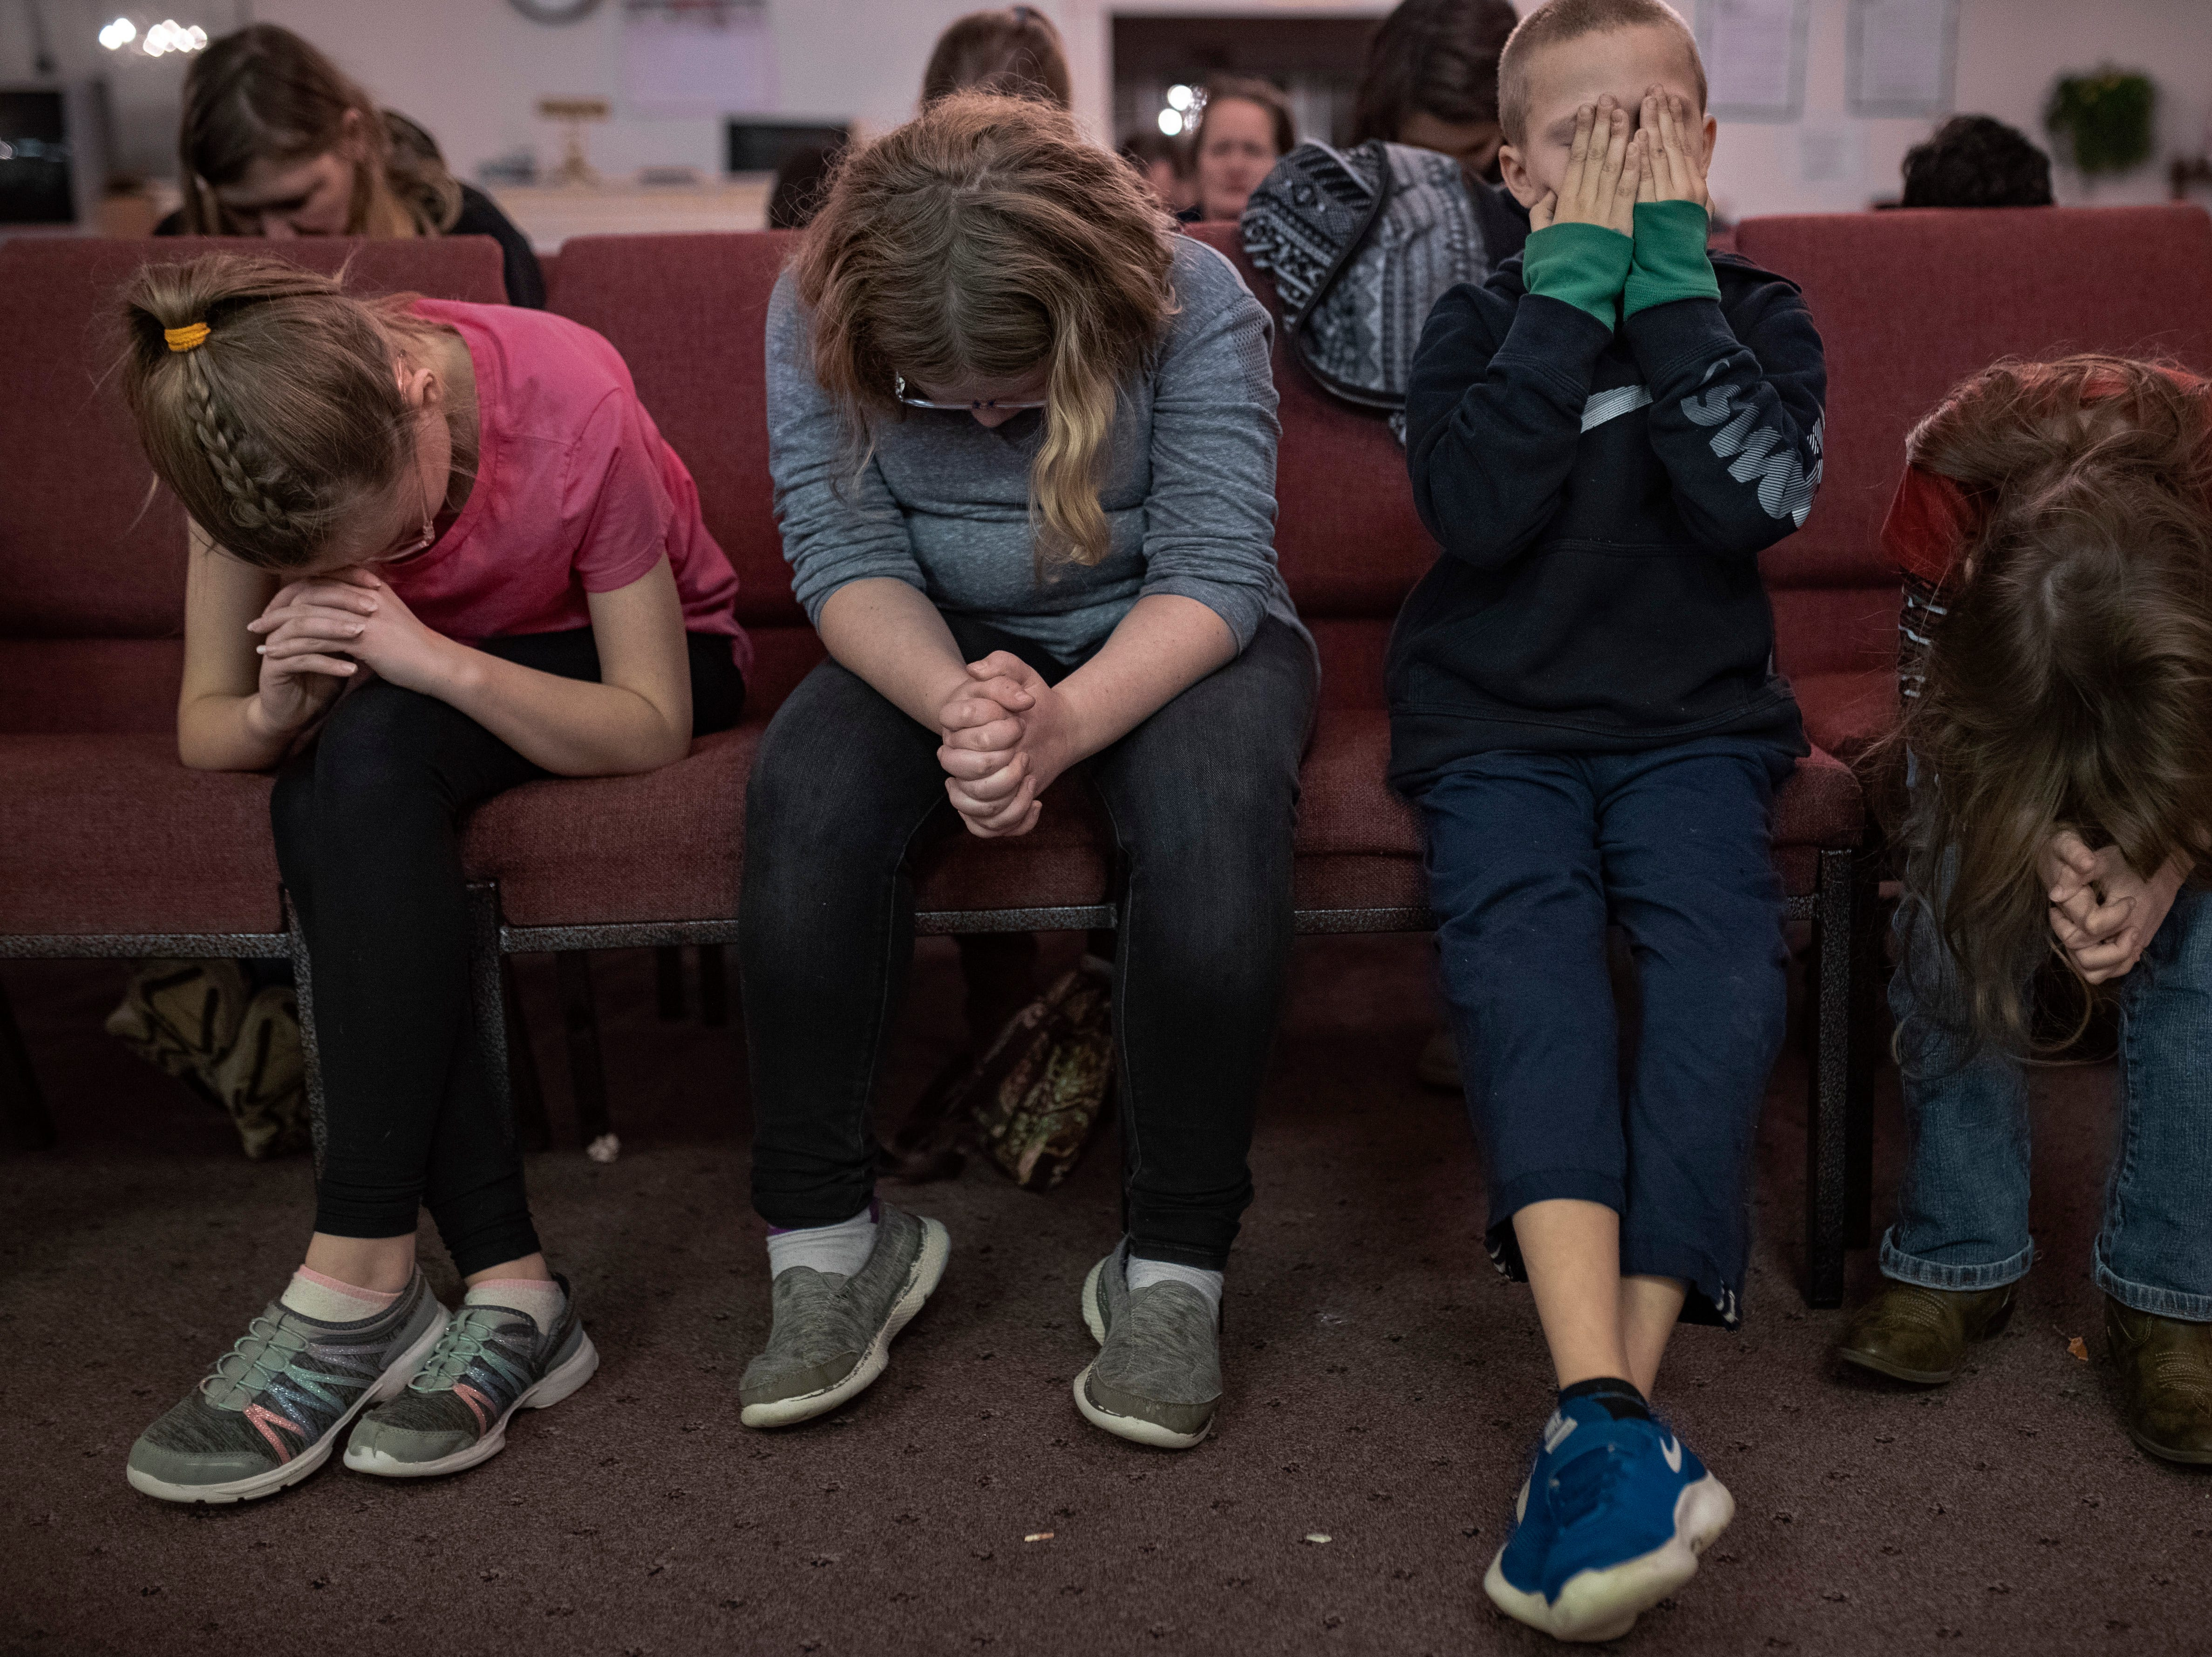 "Children pray at the close of Thursday evening youth programs at Hope To Others Church in Austin's north side. Much of the youth present, typically between age five and ten, prayed for their parents and struggles they may be facing. ""Some kids that are coming start to bring their parents with them,"" co-founder Billy Snowden said. ""We're just trying to end the cycle and create a new one where they can find some hope."" Nov. 29, 2018"